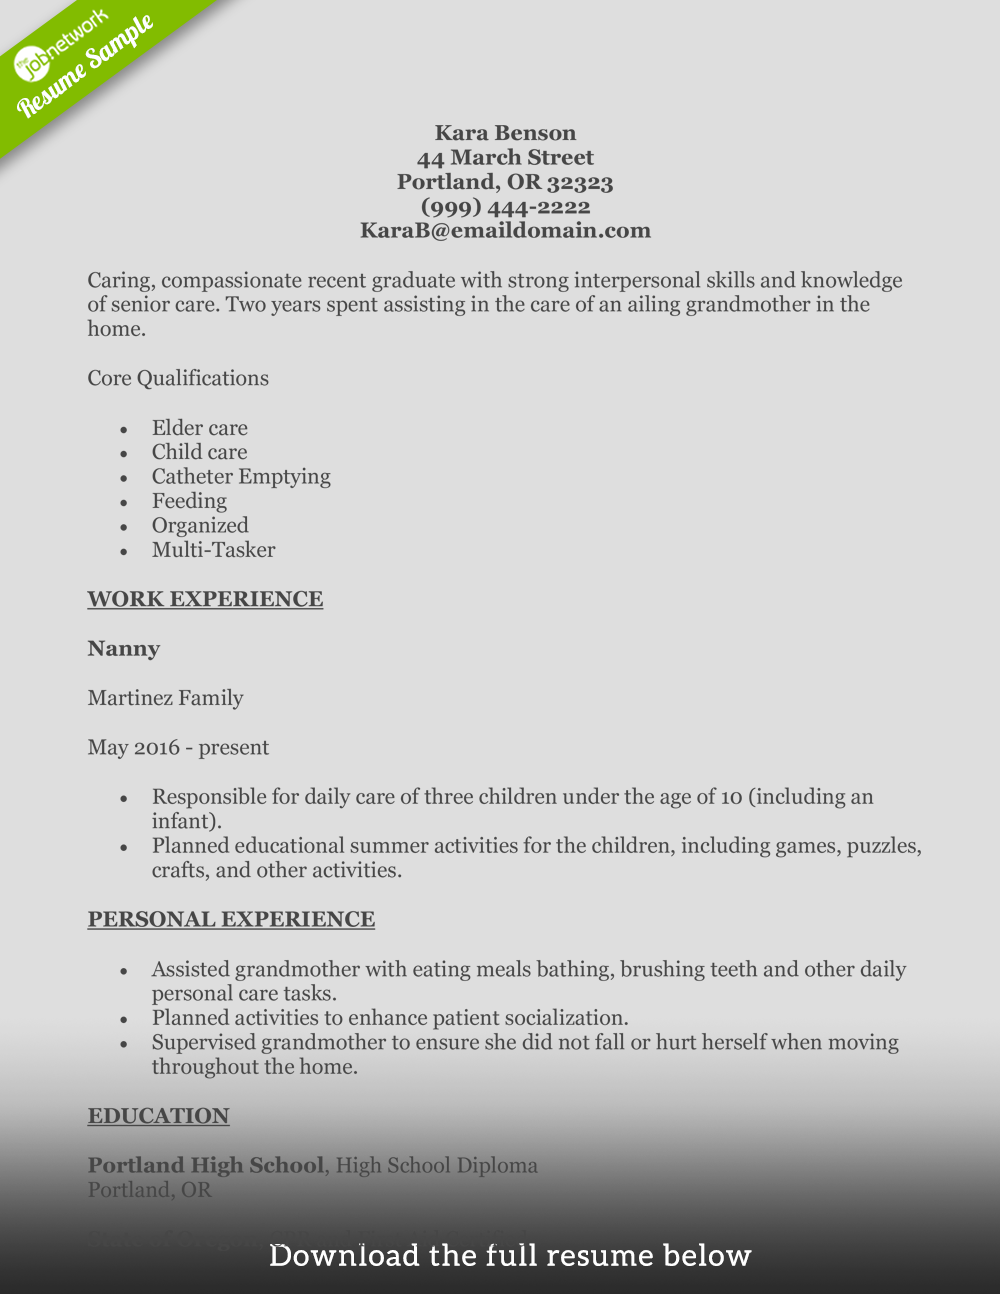 Home Health Aide Resume Entry Level  Health Care Resume